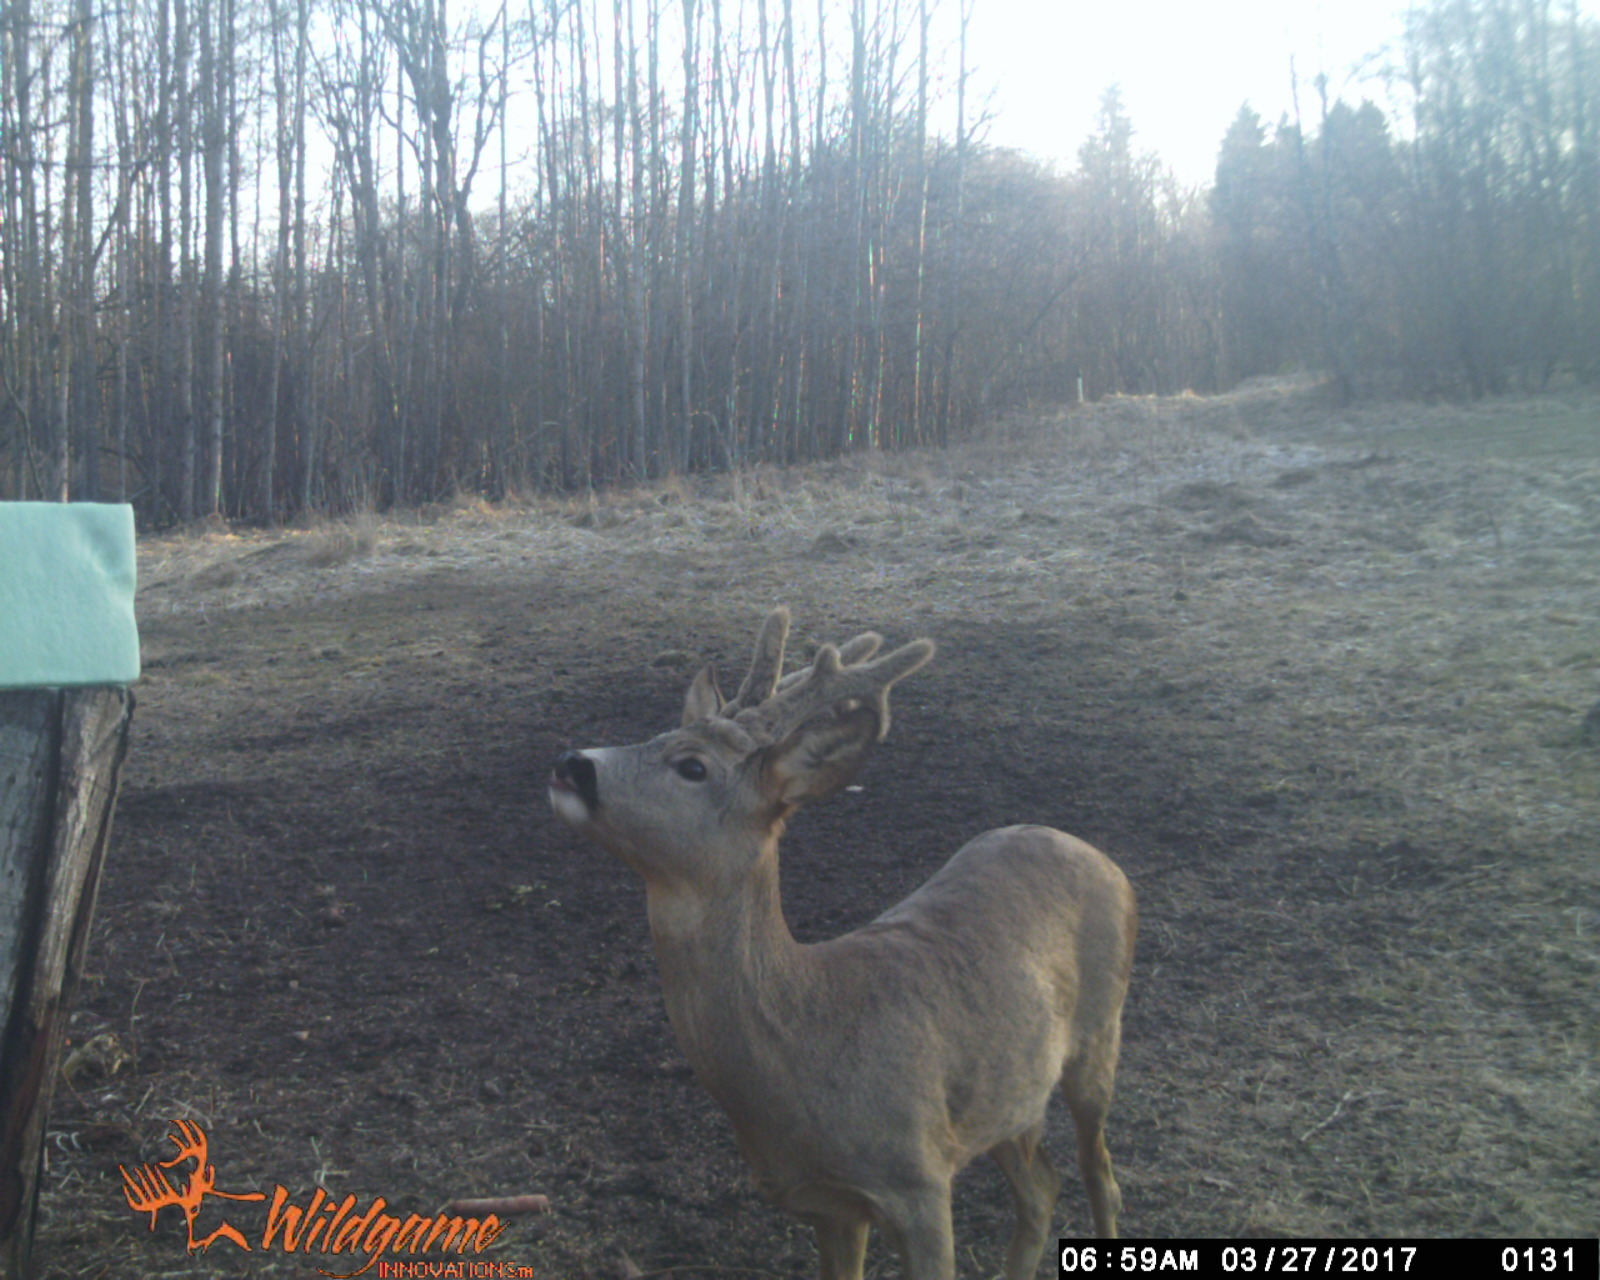 The antlers of the buck are growing